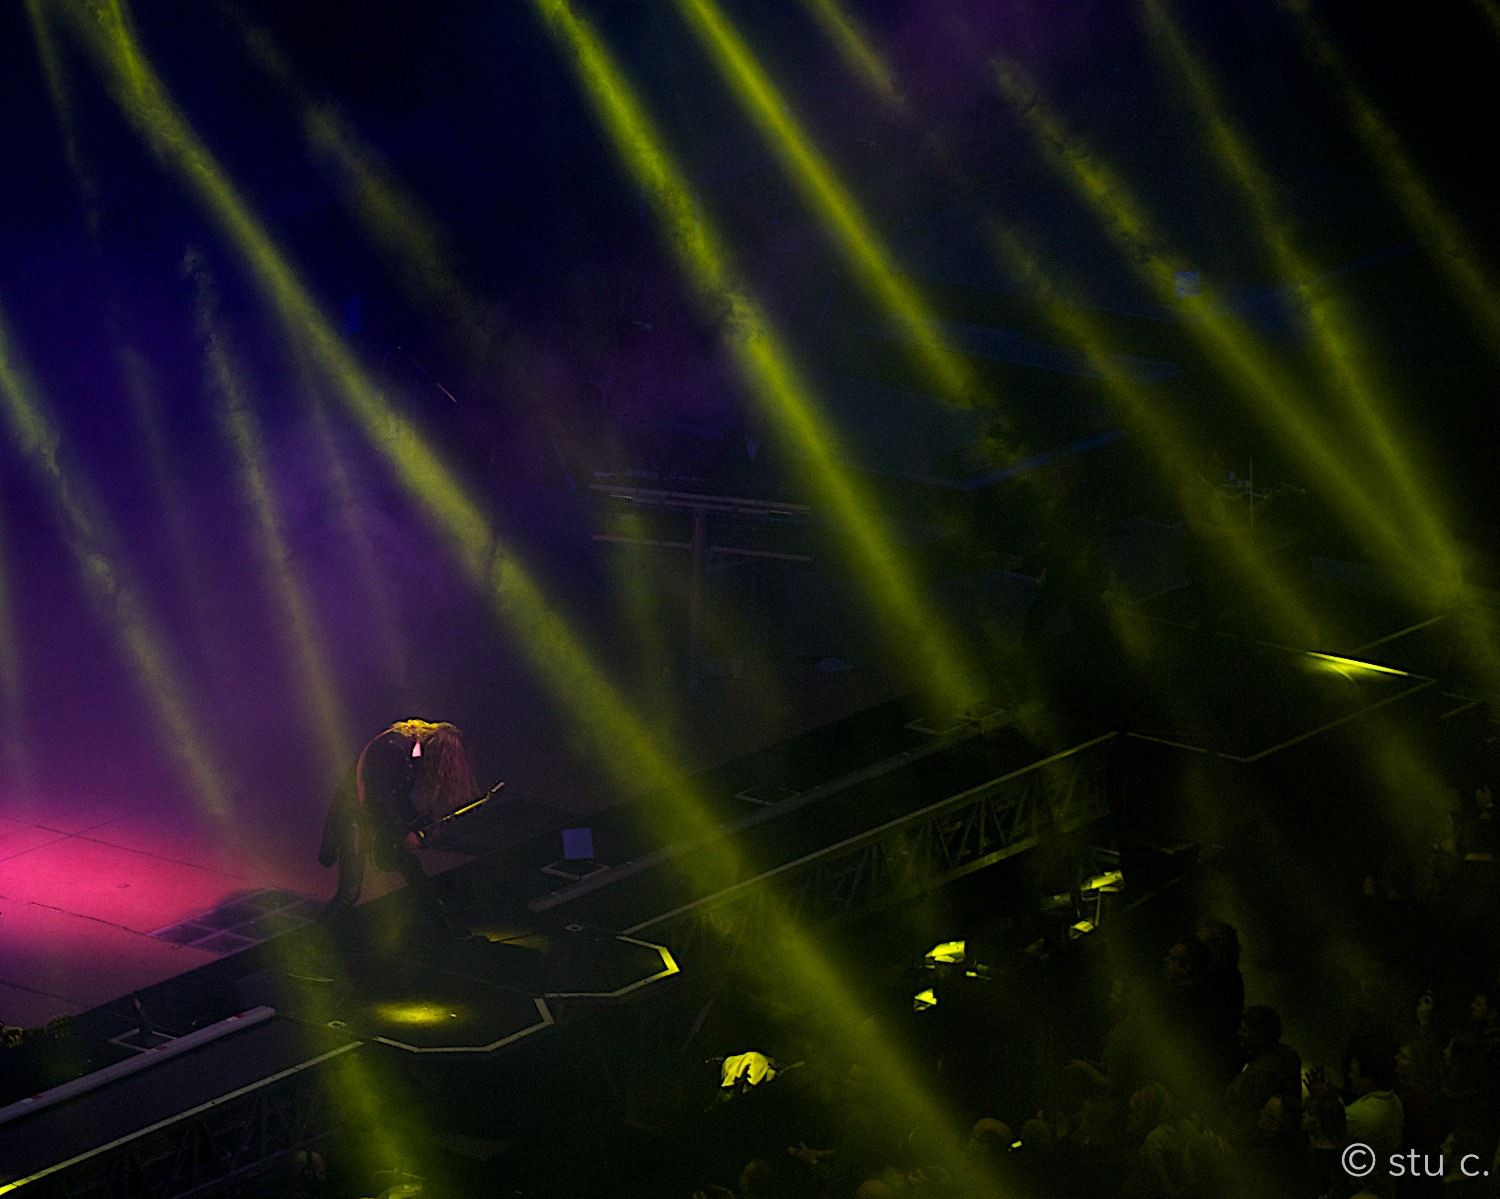 One of my favorite shots; the musician bowing, as if in abeyanceto the crowd, upward lights symbolizing their gaze